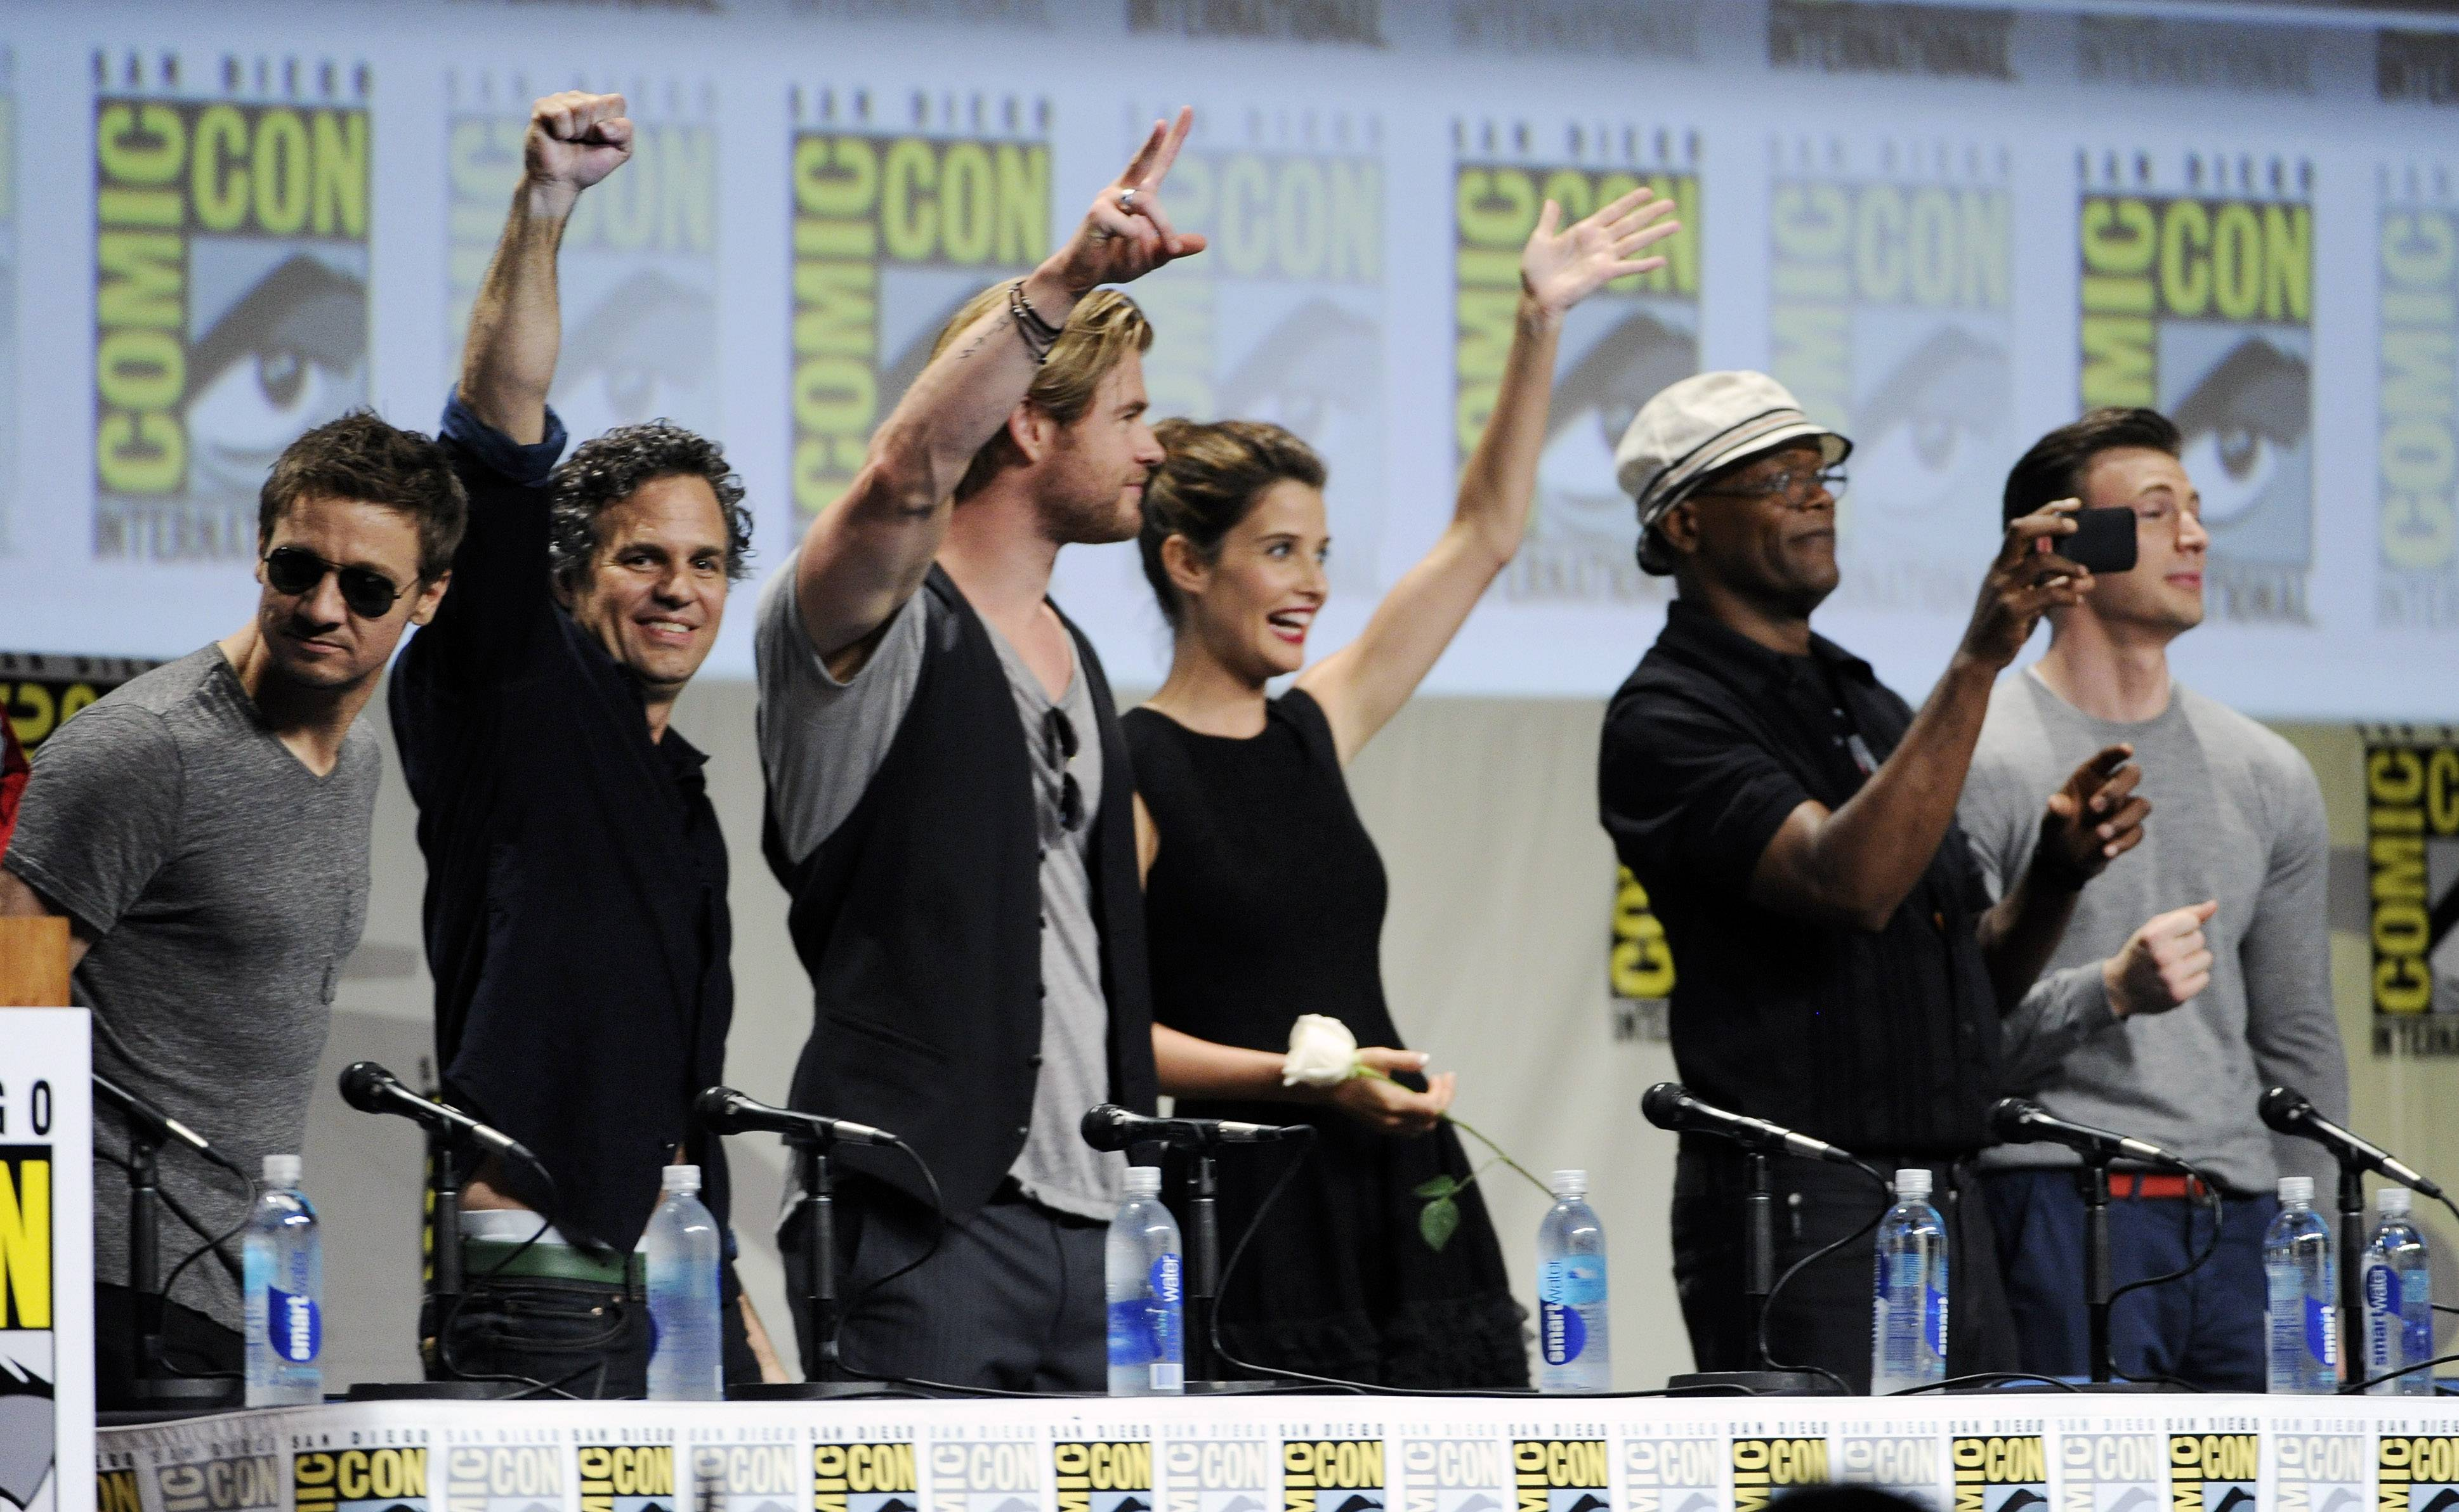 Actors Jeremy Renner, from left, Chris Hemsworth, Cobie Smulders, Samuel L. Jackson and Chris Evans stand during the Marvel panel at Comic-Con International on Saturday in San Diego.